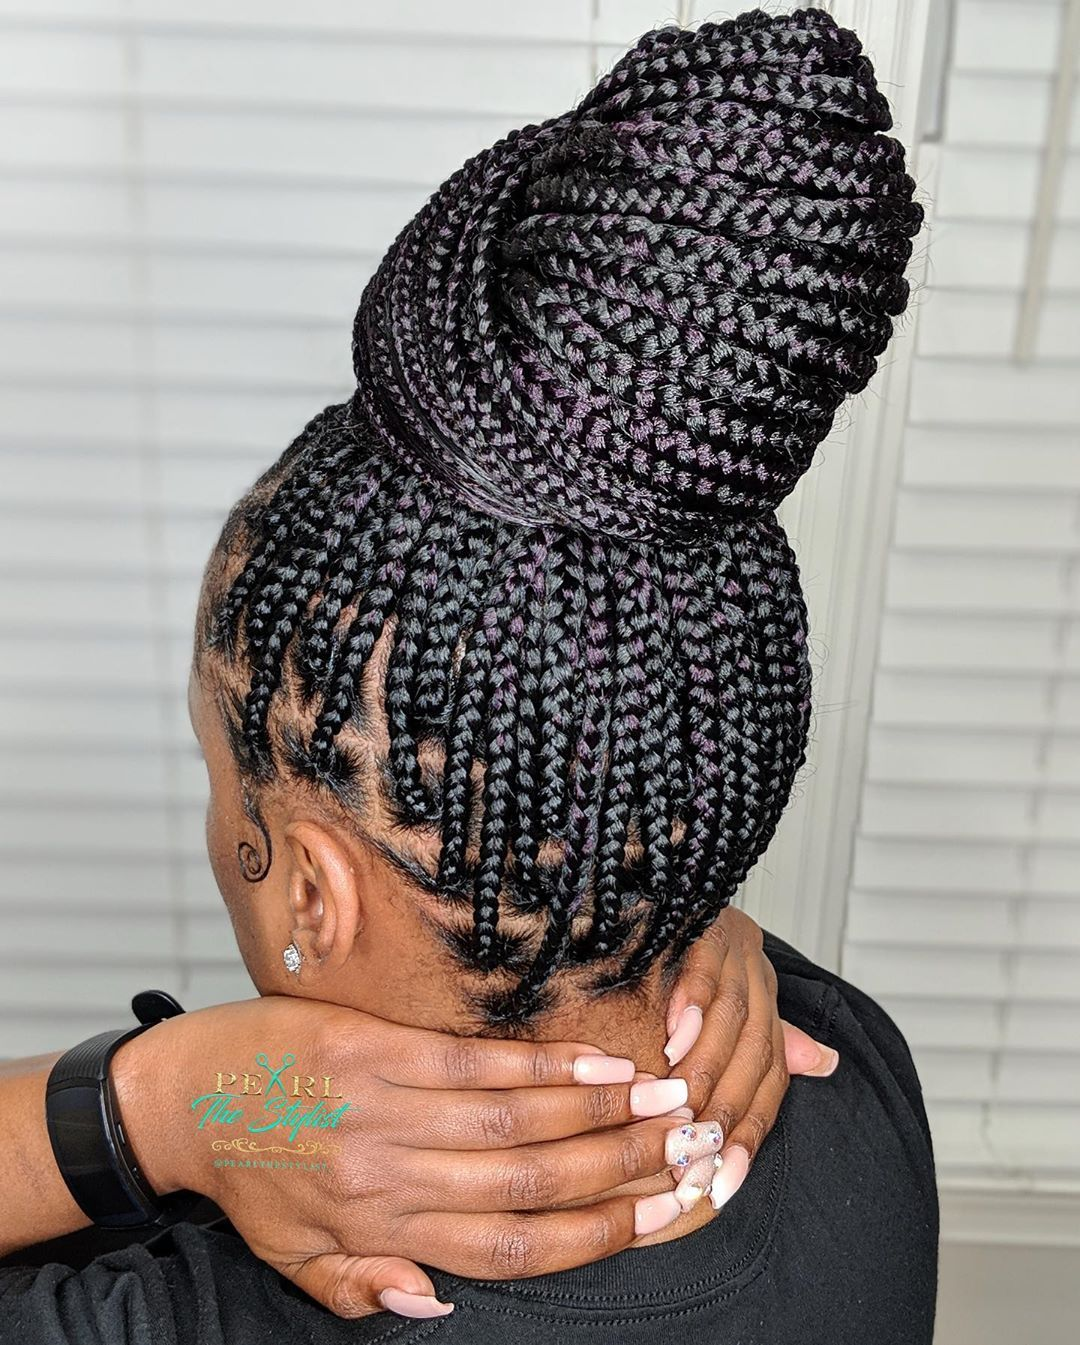 Knotless Braids Vs Box Braids What They Are Tutorials Differences Hair Styles Box Braids Hairstyles For Black Women Braids Hairstyles Pictures